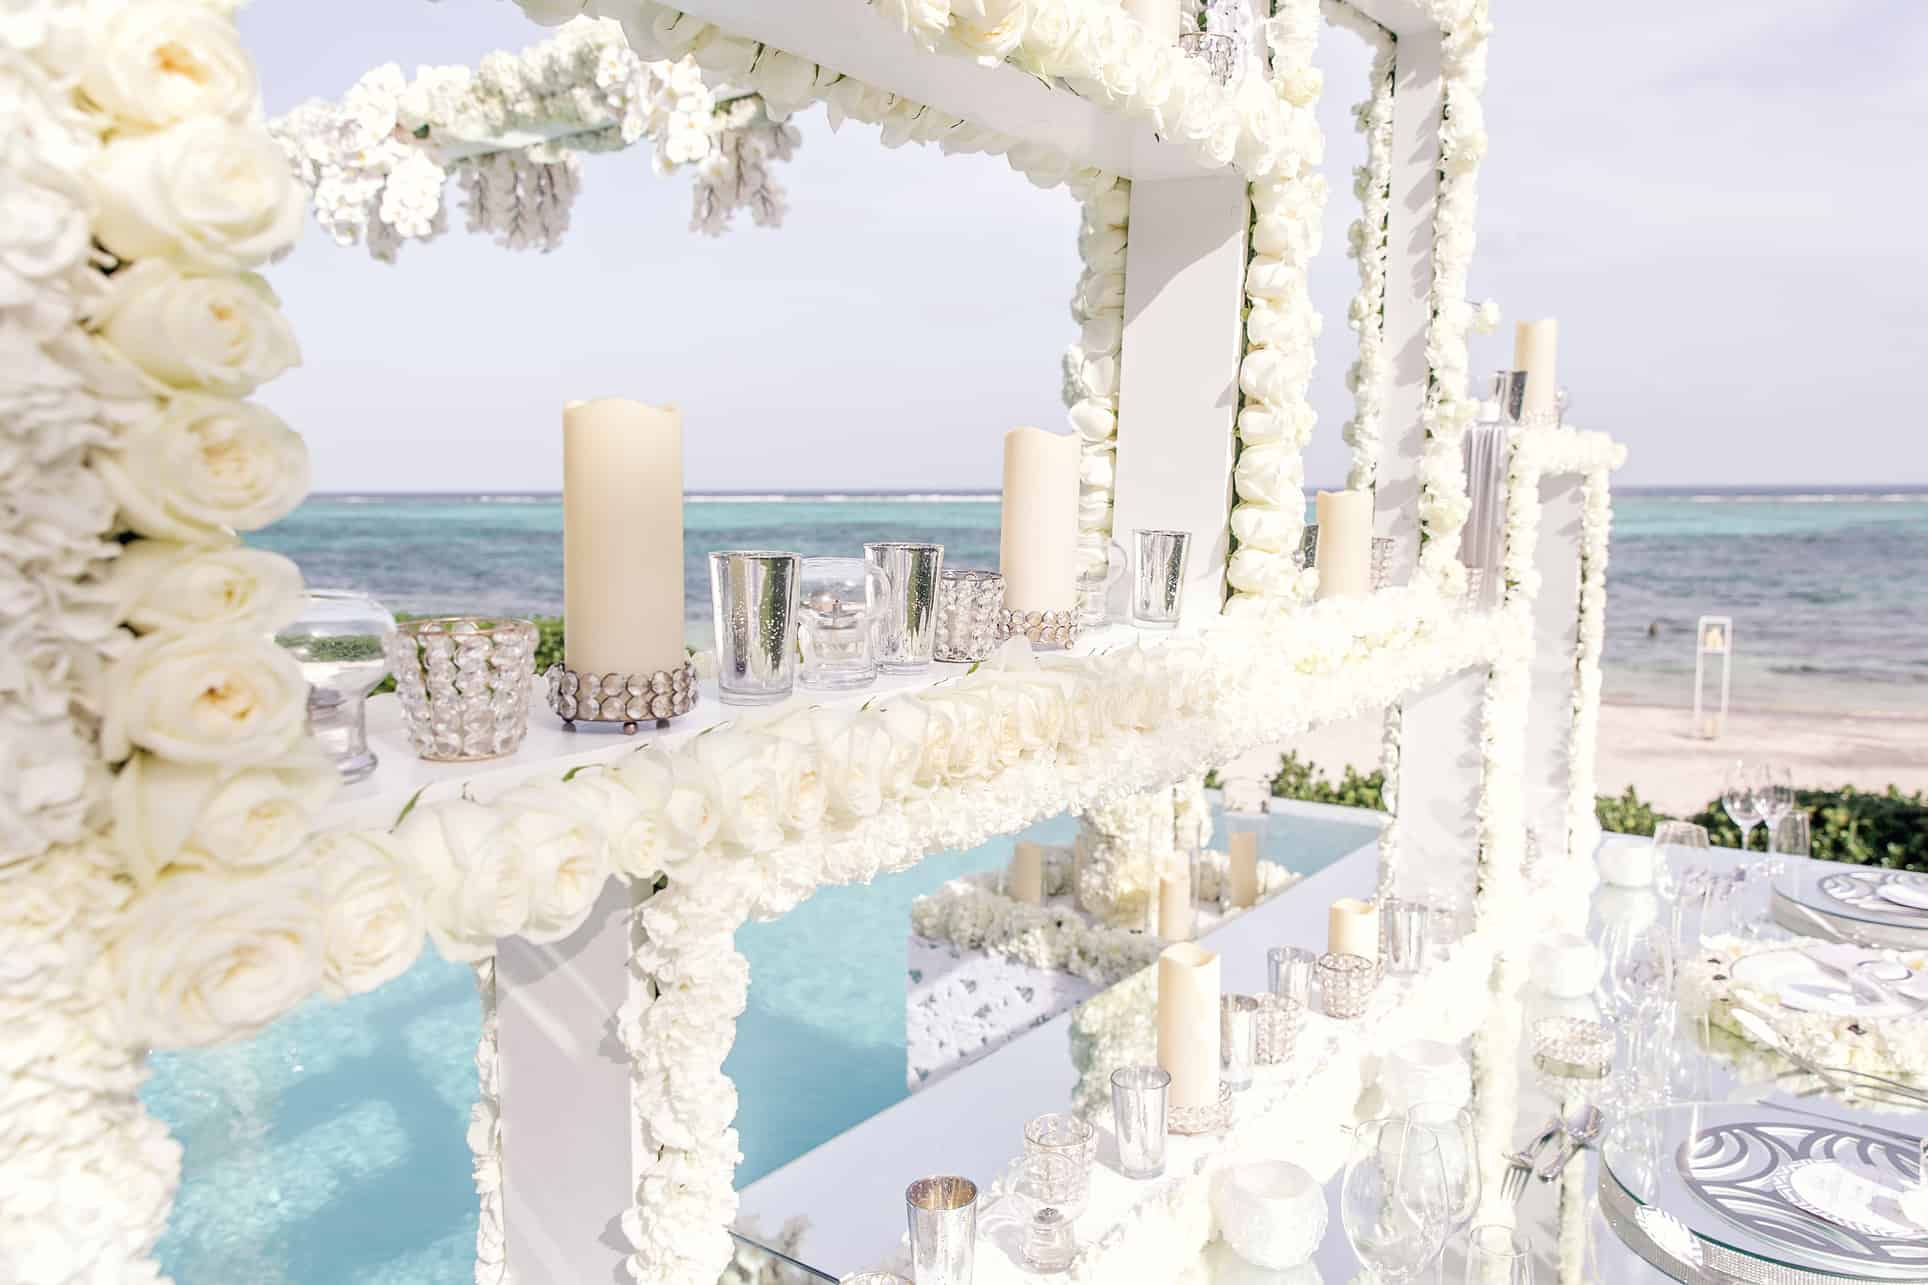 Silver White Destination Wedding Design and Decor by JoAnne V Brown of Celebrations Ltd & JVB Design House in the Cayman Islands